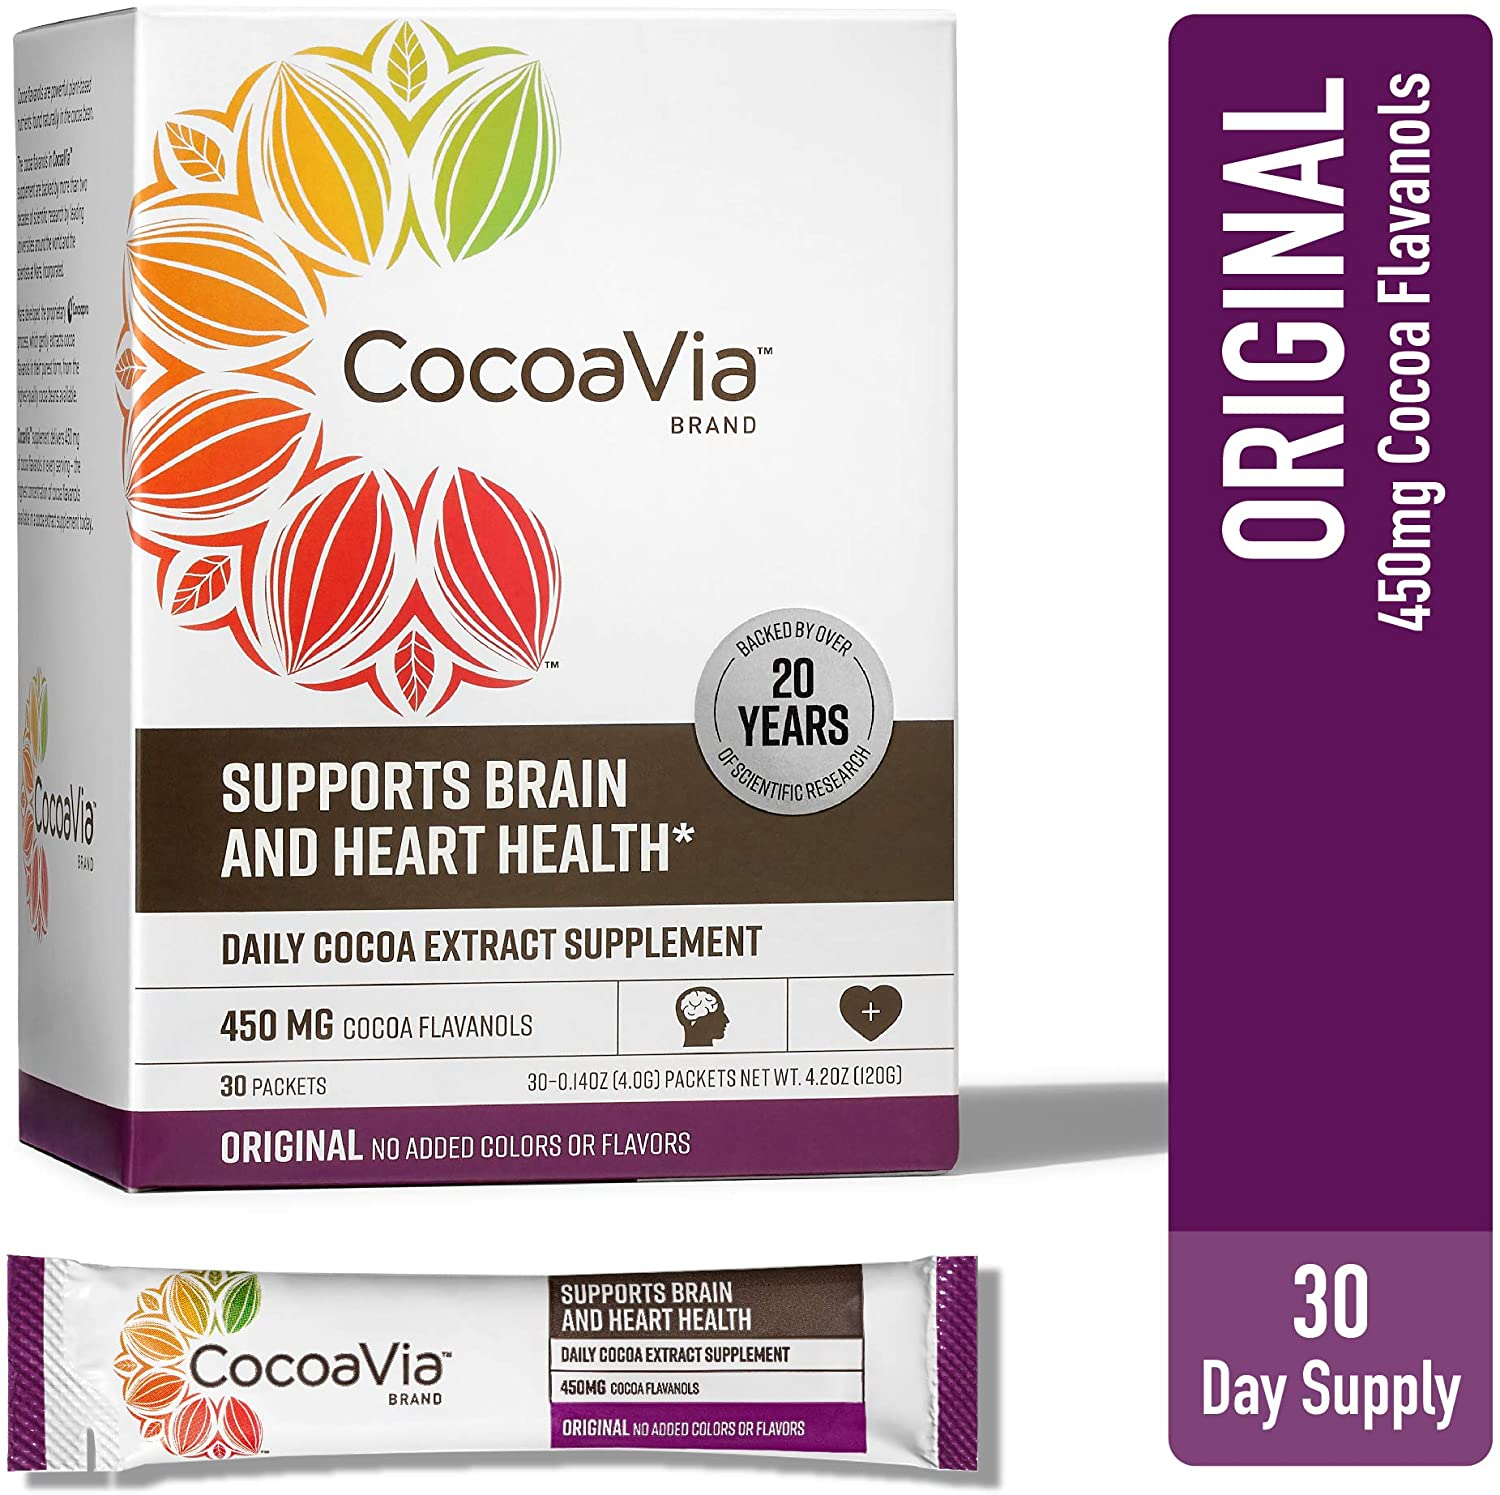 CocoaVia Cocoa Flavanol Powdered Drink Mix